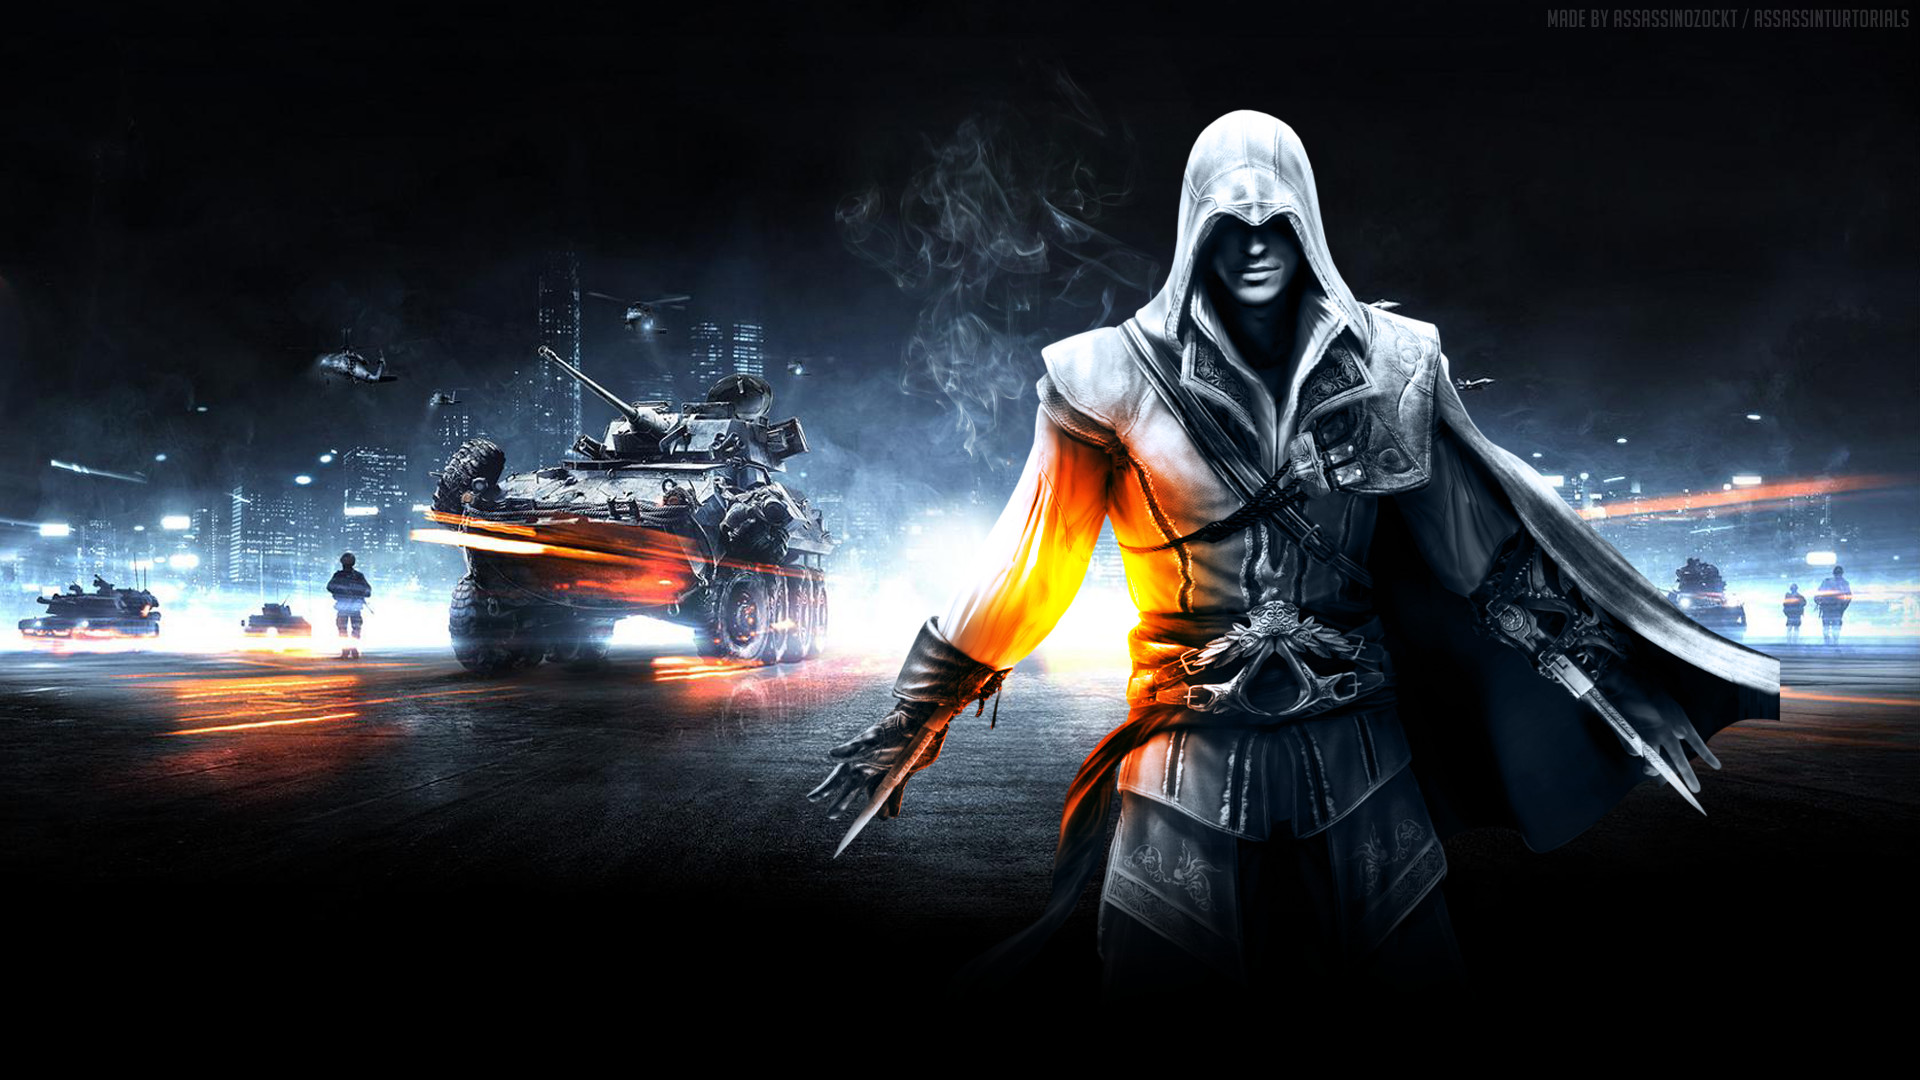 Video Game Backgrounds | Latest Hd Wallpapers